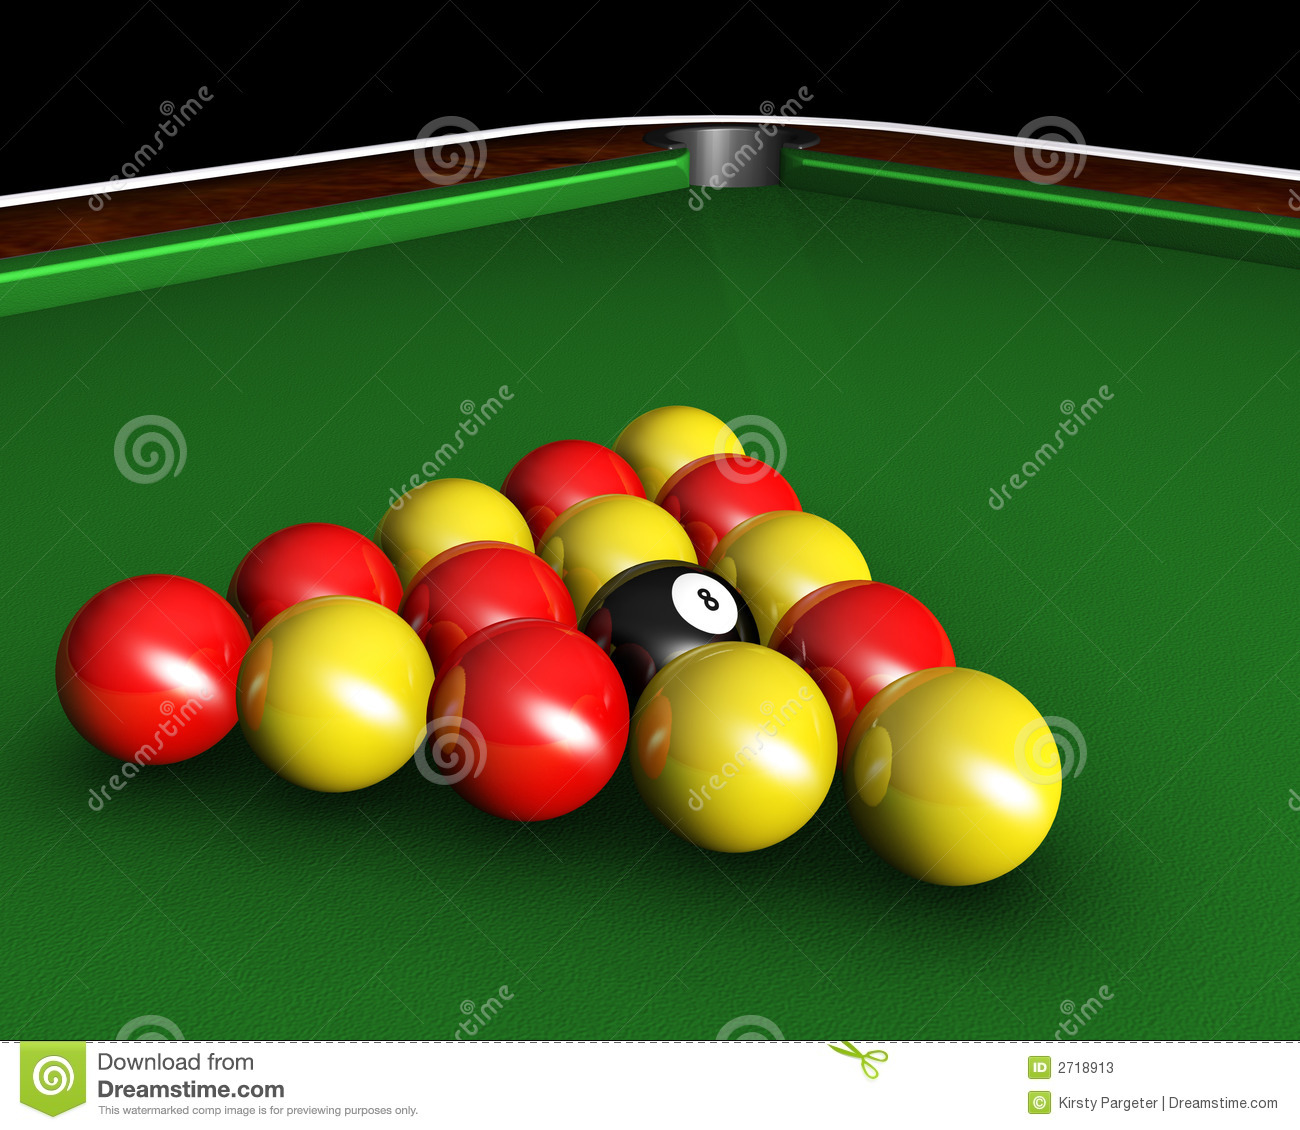 vector airelle balls graphicriver pool item realistic table by billiard